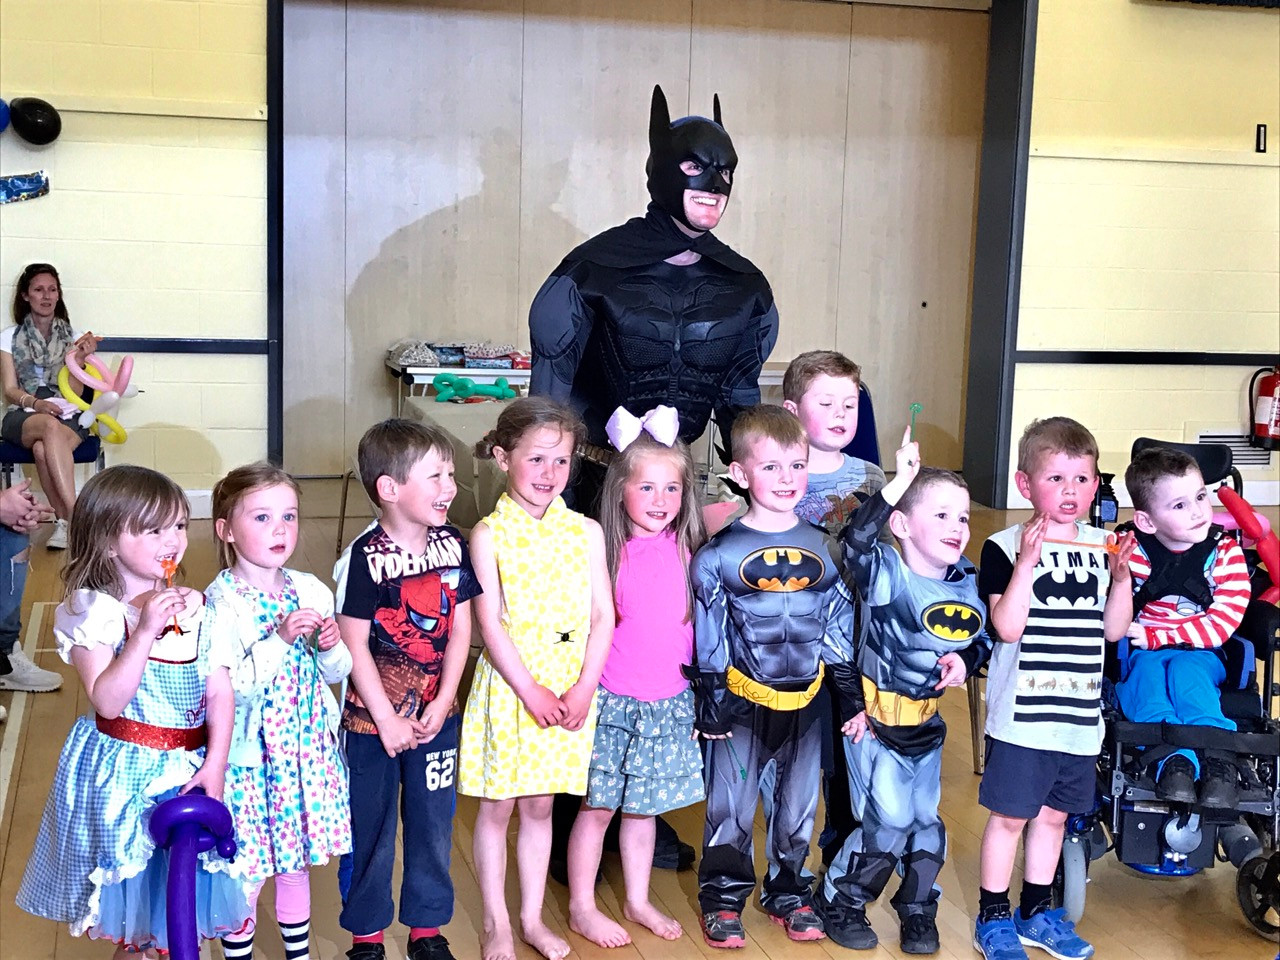 Batman Parties London And South East - Childrens birthday party ideas east london